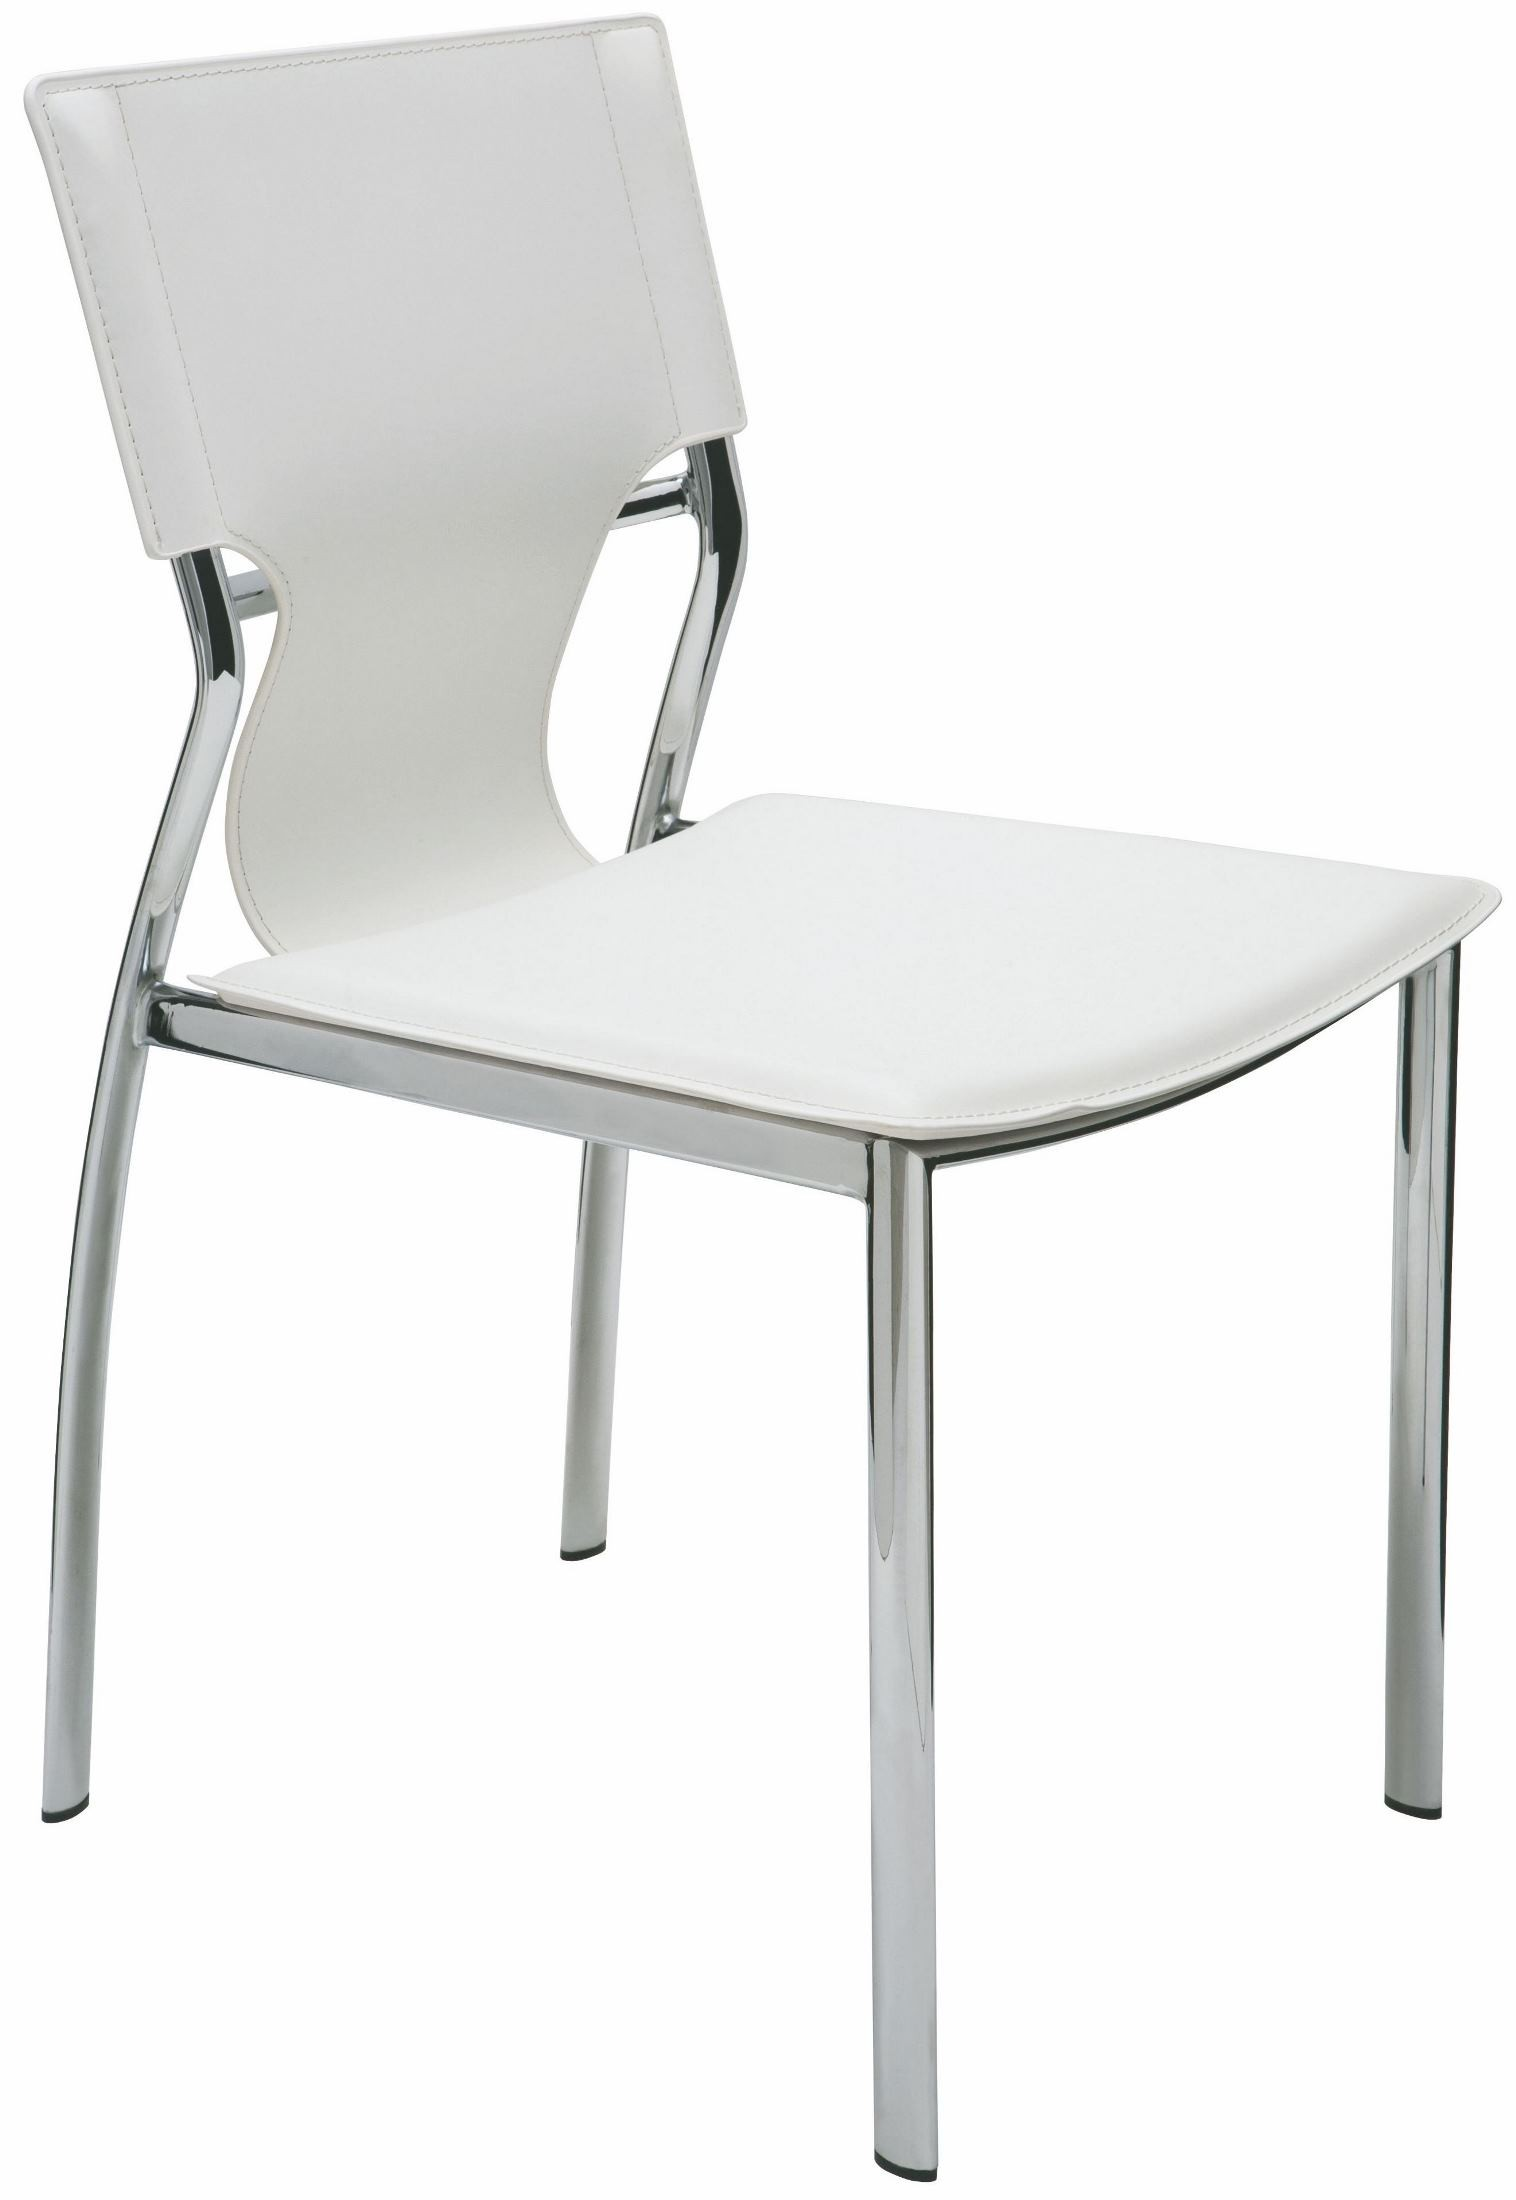 Lisbon White Leather Dining Chair Hgga243 Nuevo